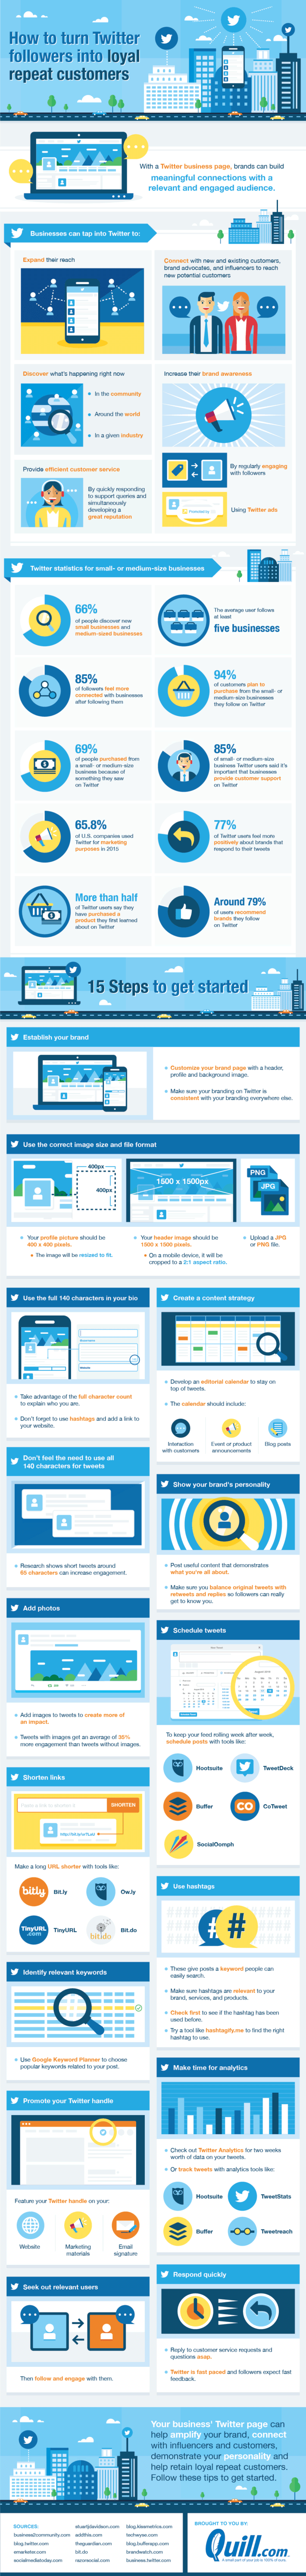 Got a Twitter Business Page? It's a great way to build meaningful connections with your audience - IF you follow the tips on this helpful infographic!